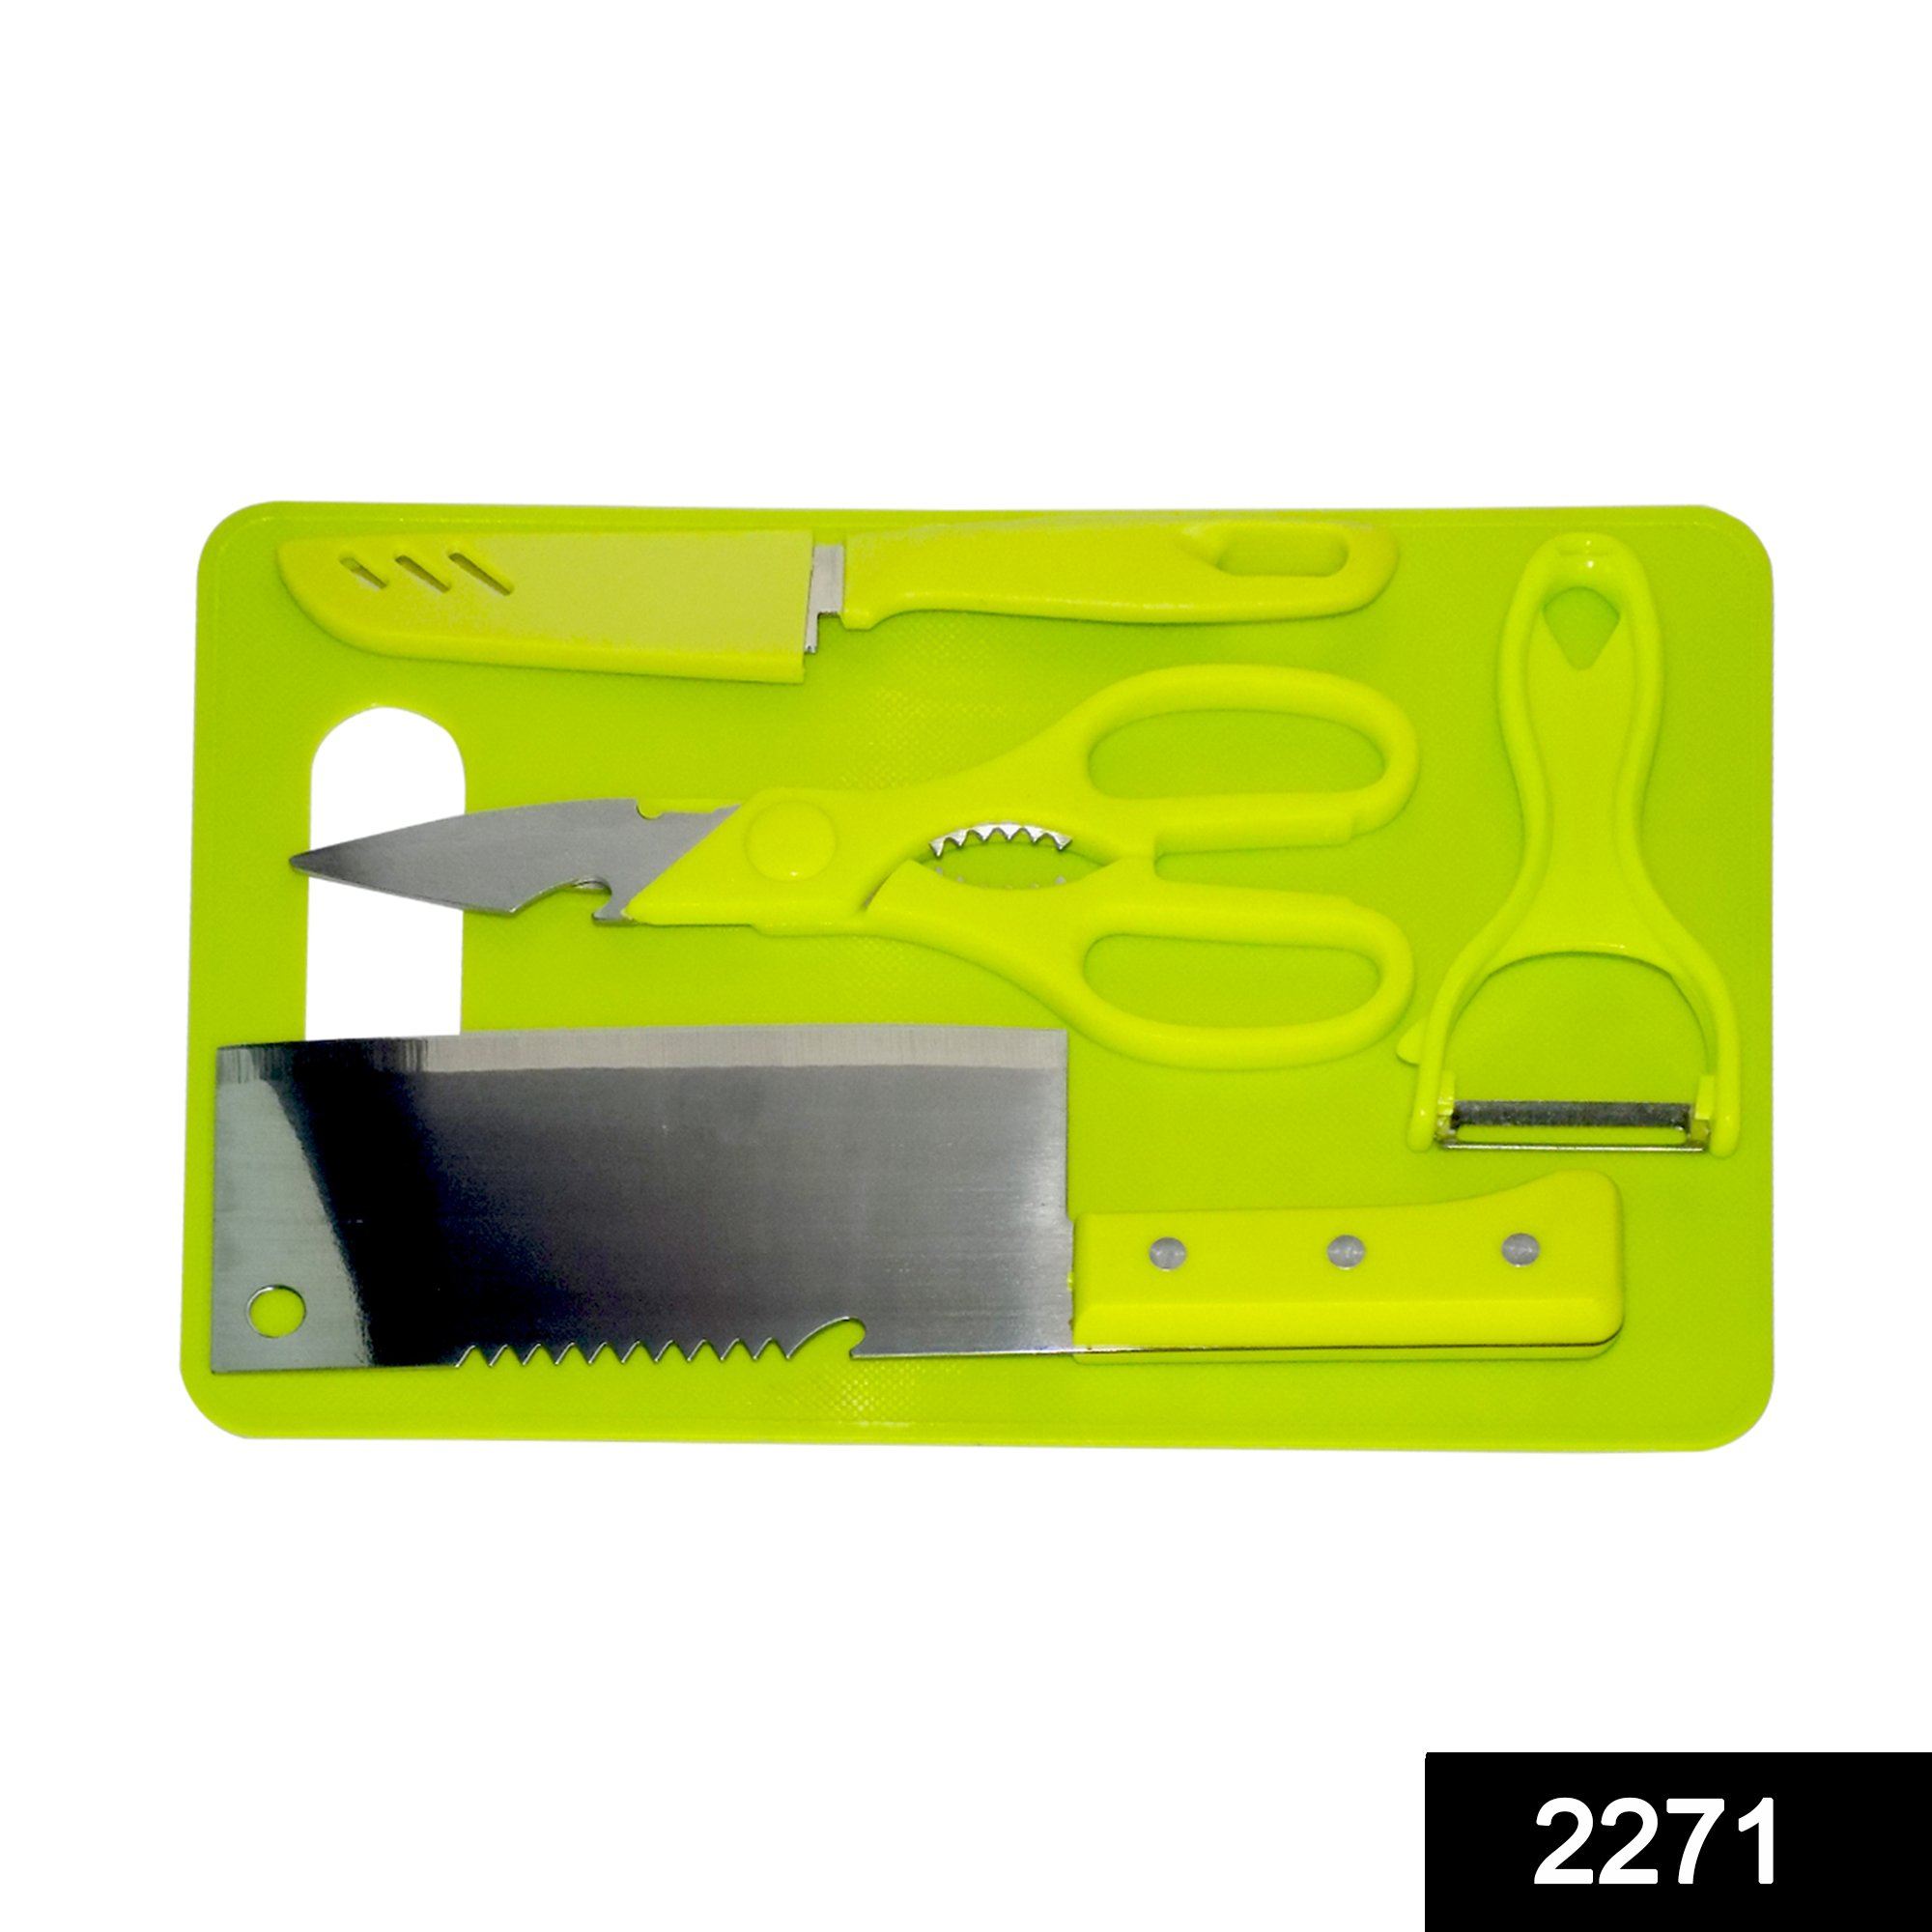 2271 Premium Stainless Steel Kitchen Chopping Tool Set (Butcher Knife, Peeler, Standard Knife and Kitchen Scissor with Chopping Board) - 5 Pcs -